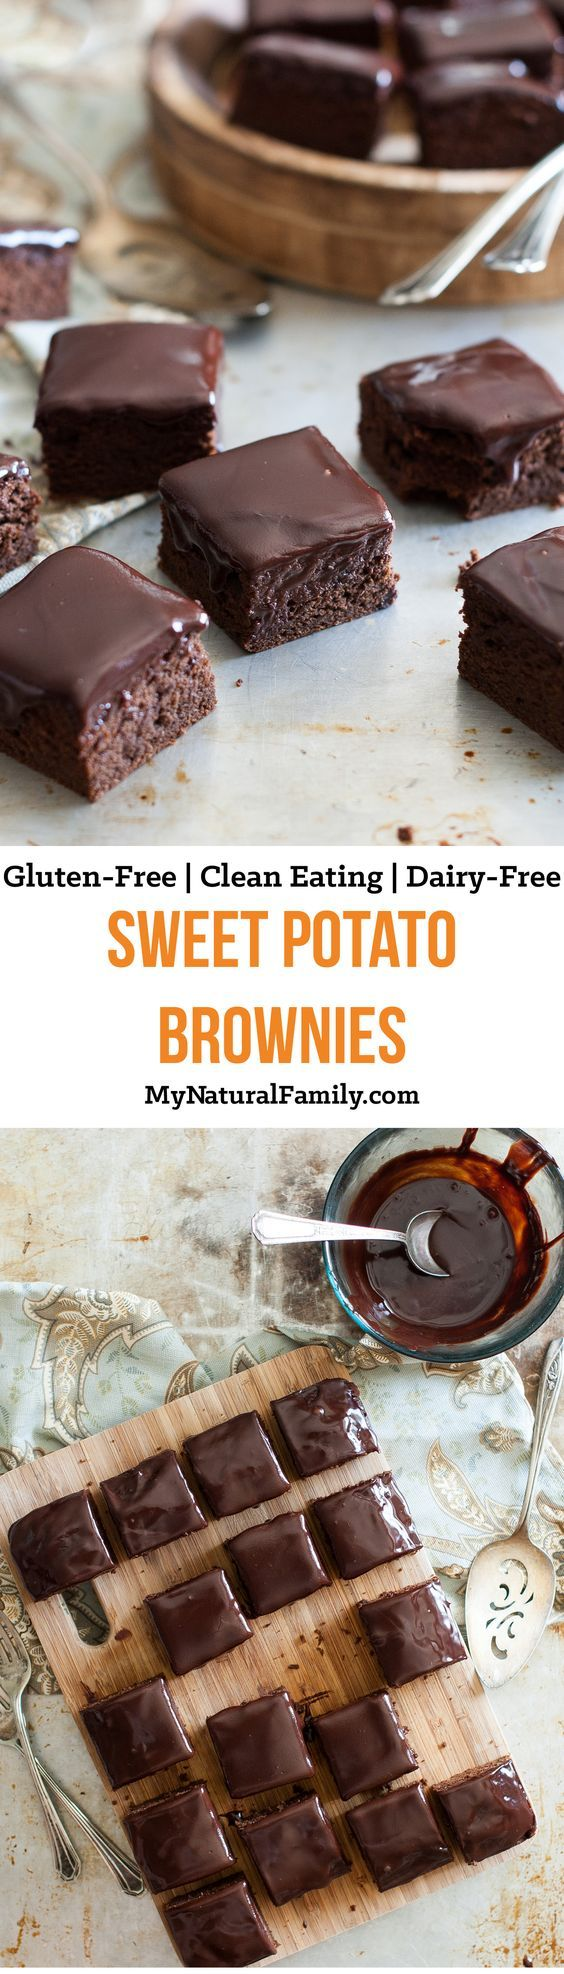 sweet potato brownies recipe | healthy recipe ideas @xhealthyrecipex